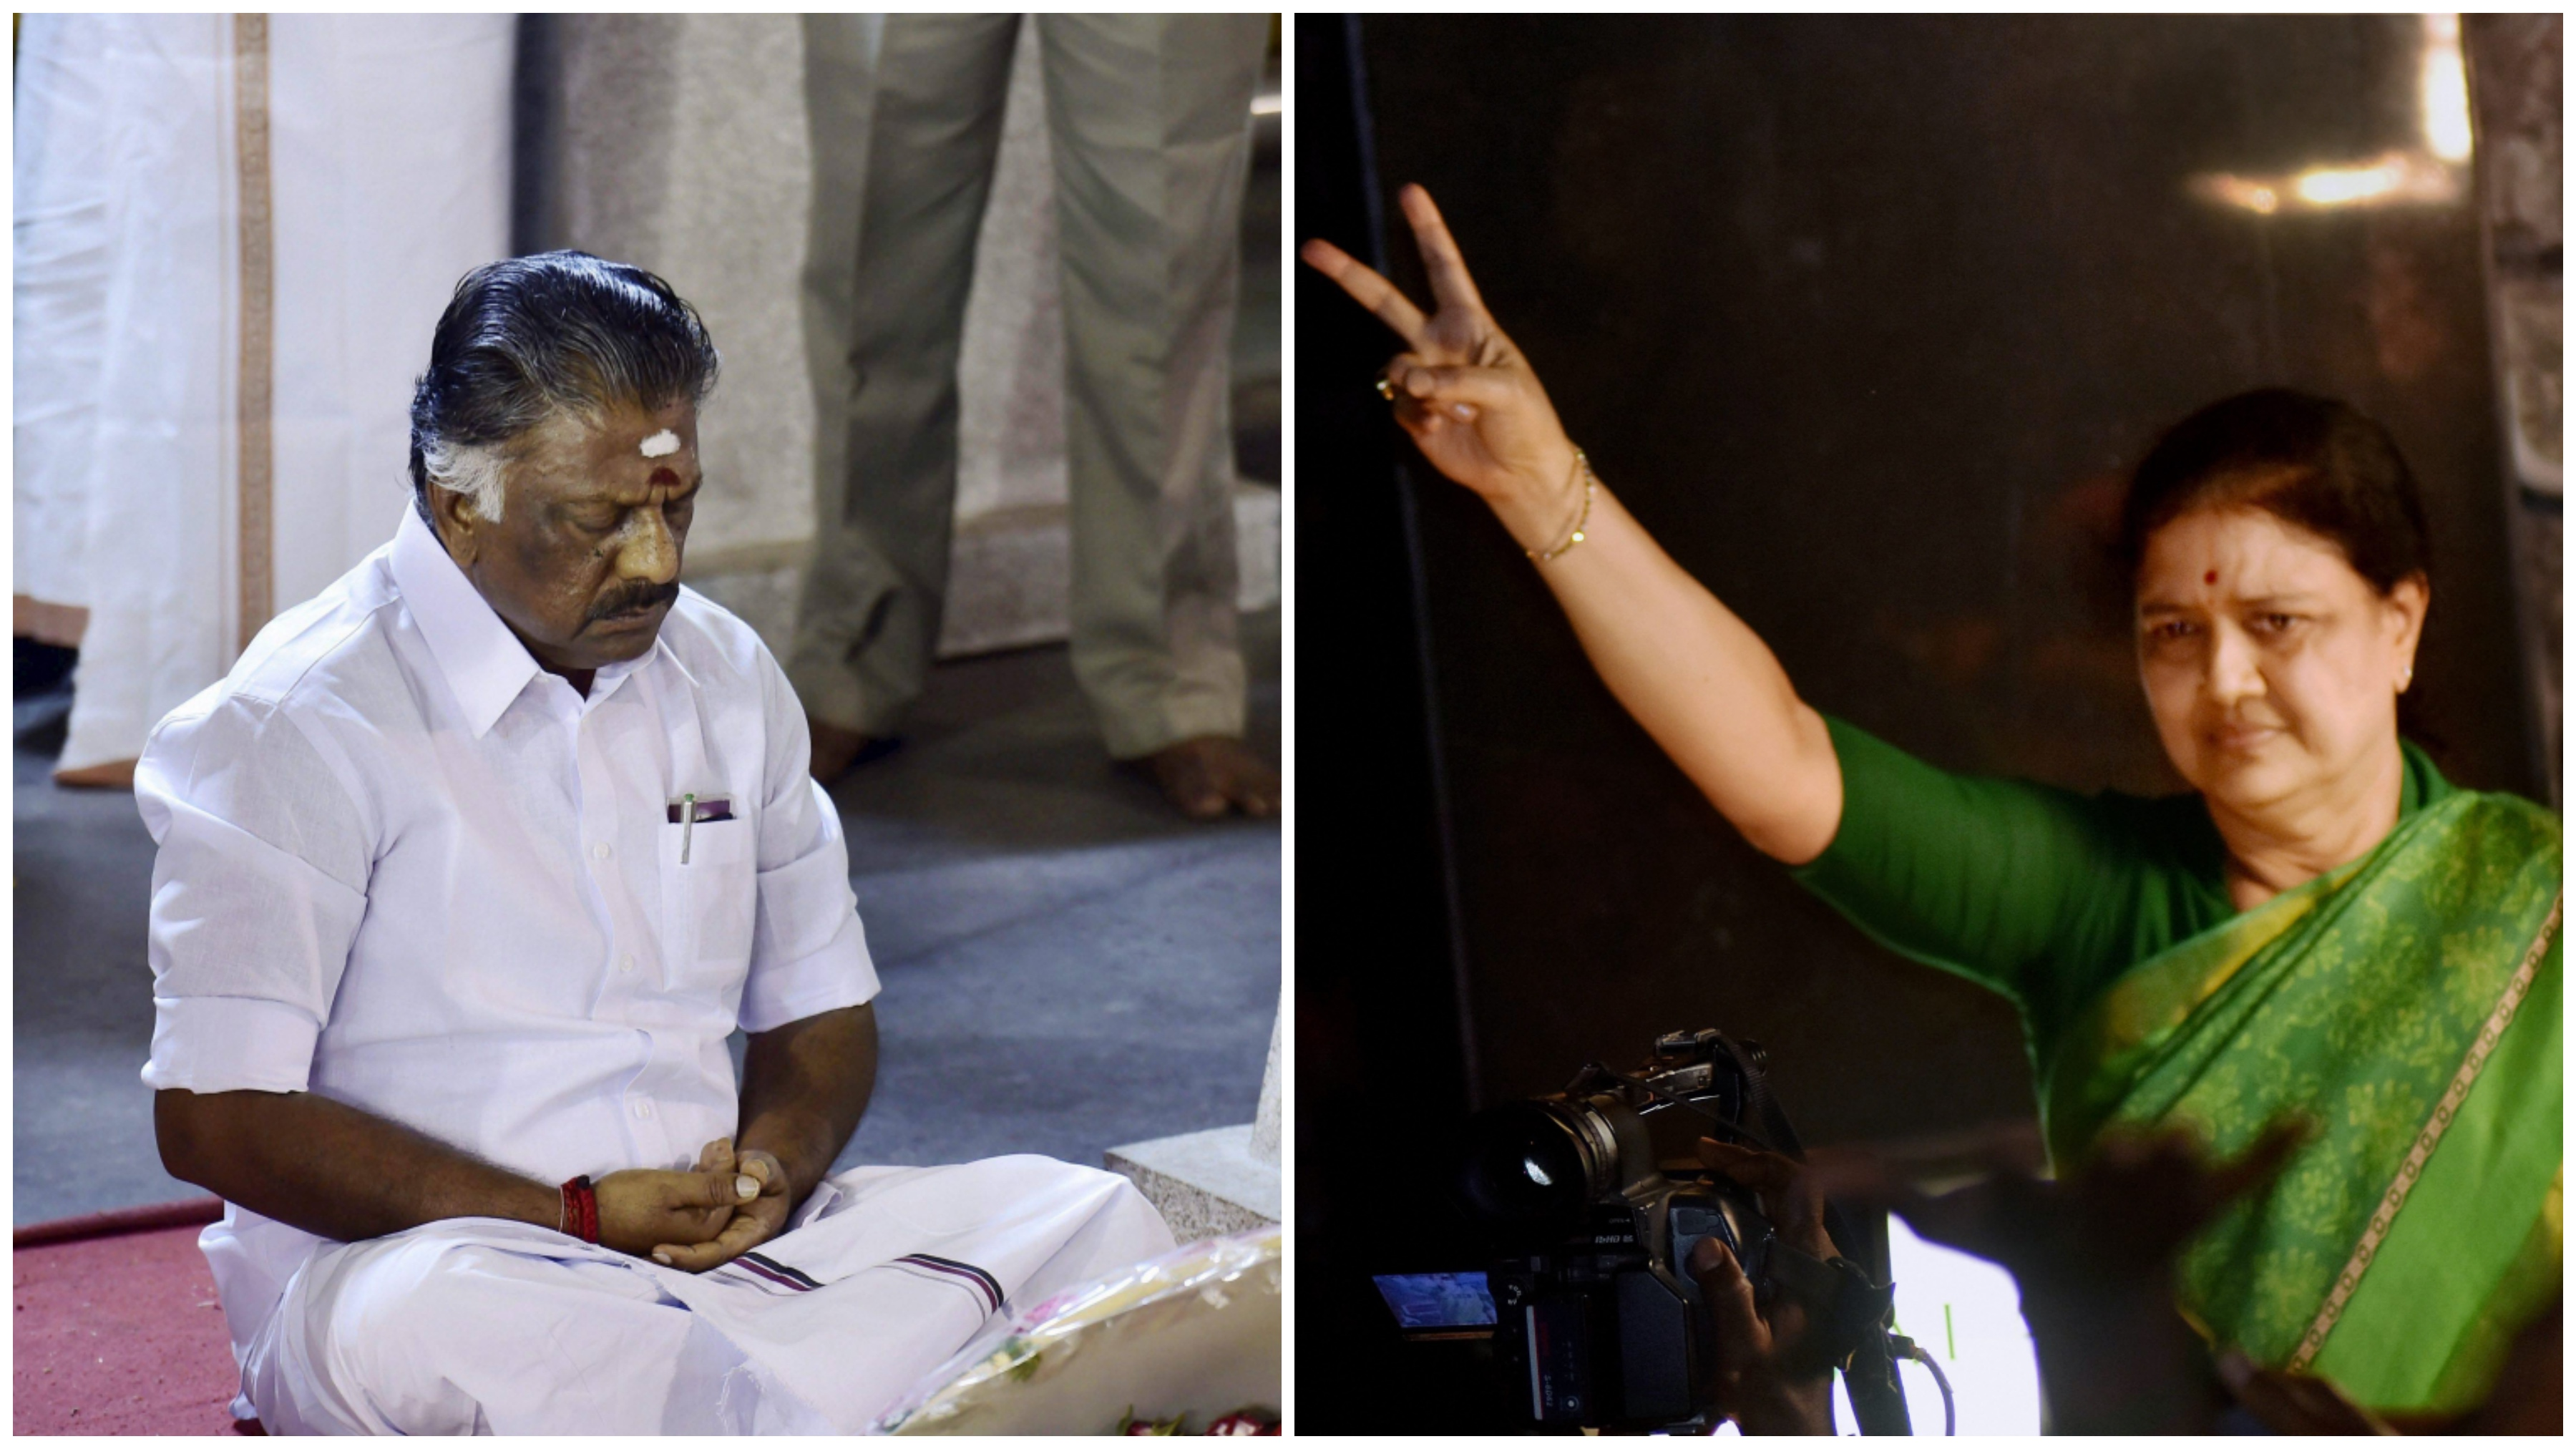 Sasikala and Panneerselvam Vie For Party Loyalty As Drama Continues to Unfold in Tamil Nadu